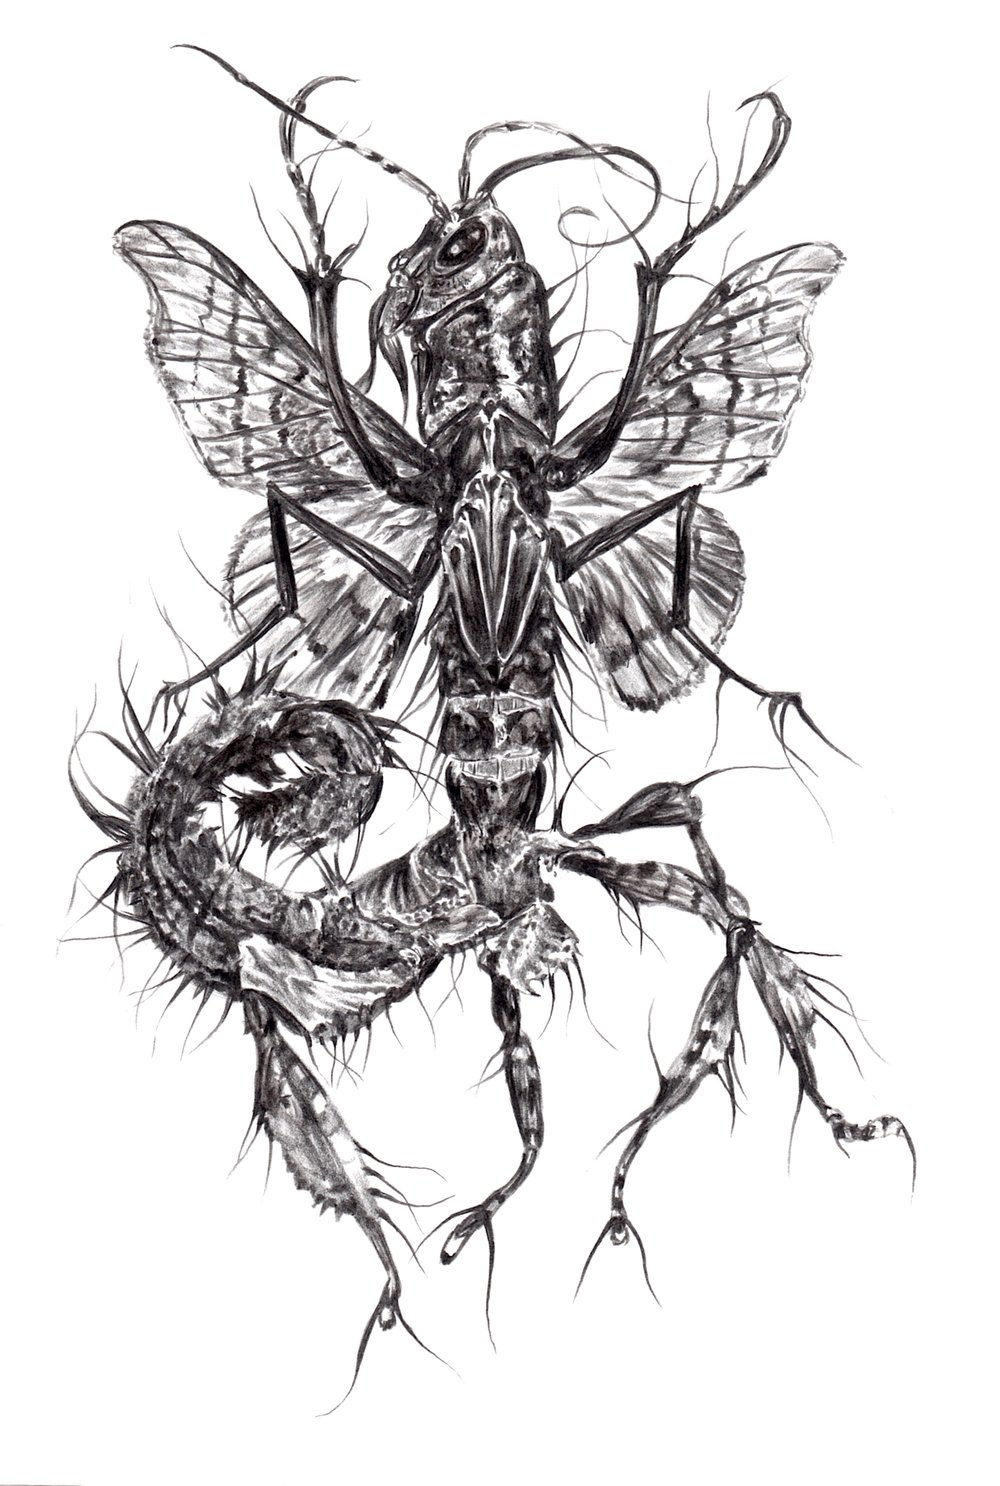 """Madness Unmasked (Rhopafera Scorpionoidea Gemæded)"" Pencil on Terraskin."